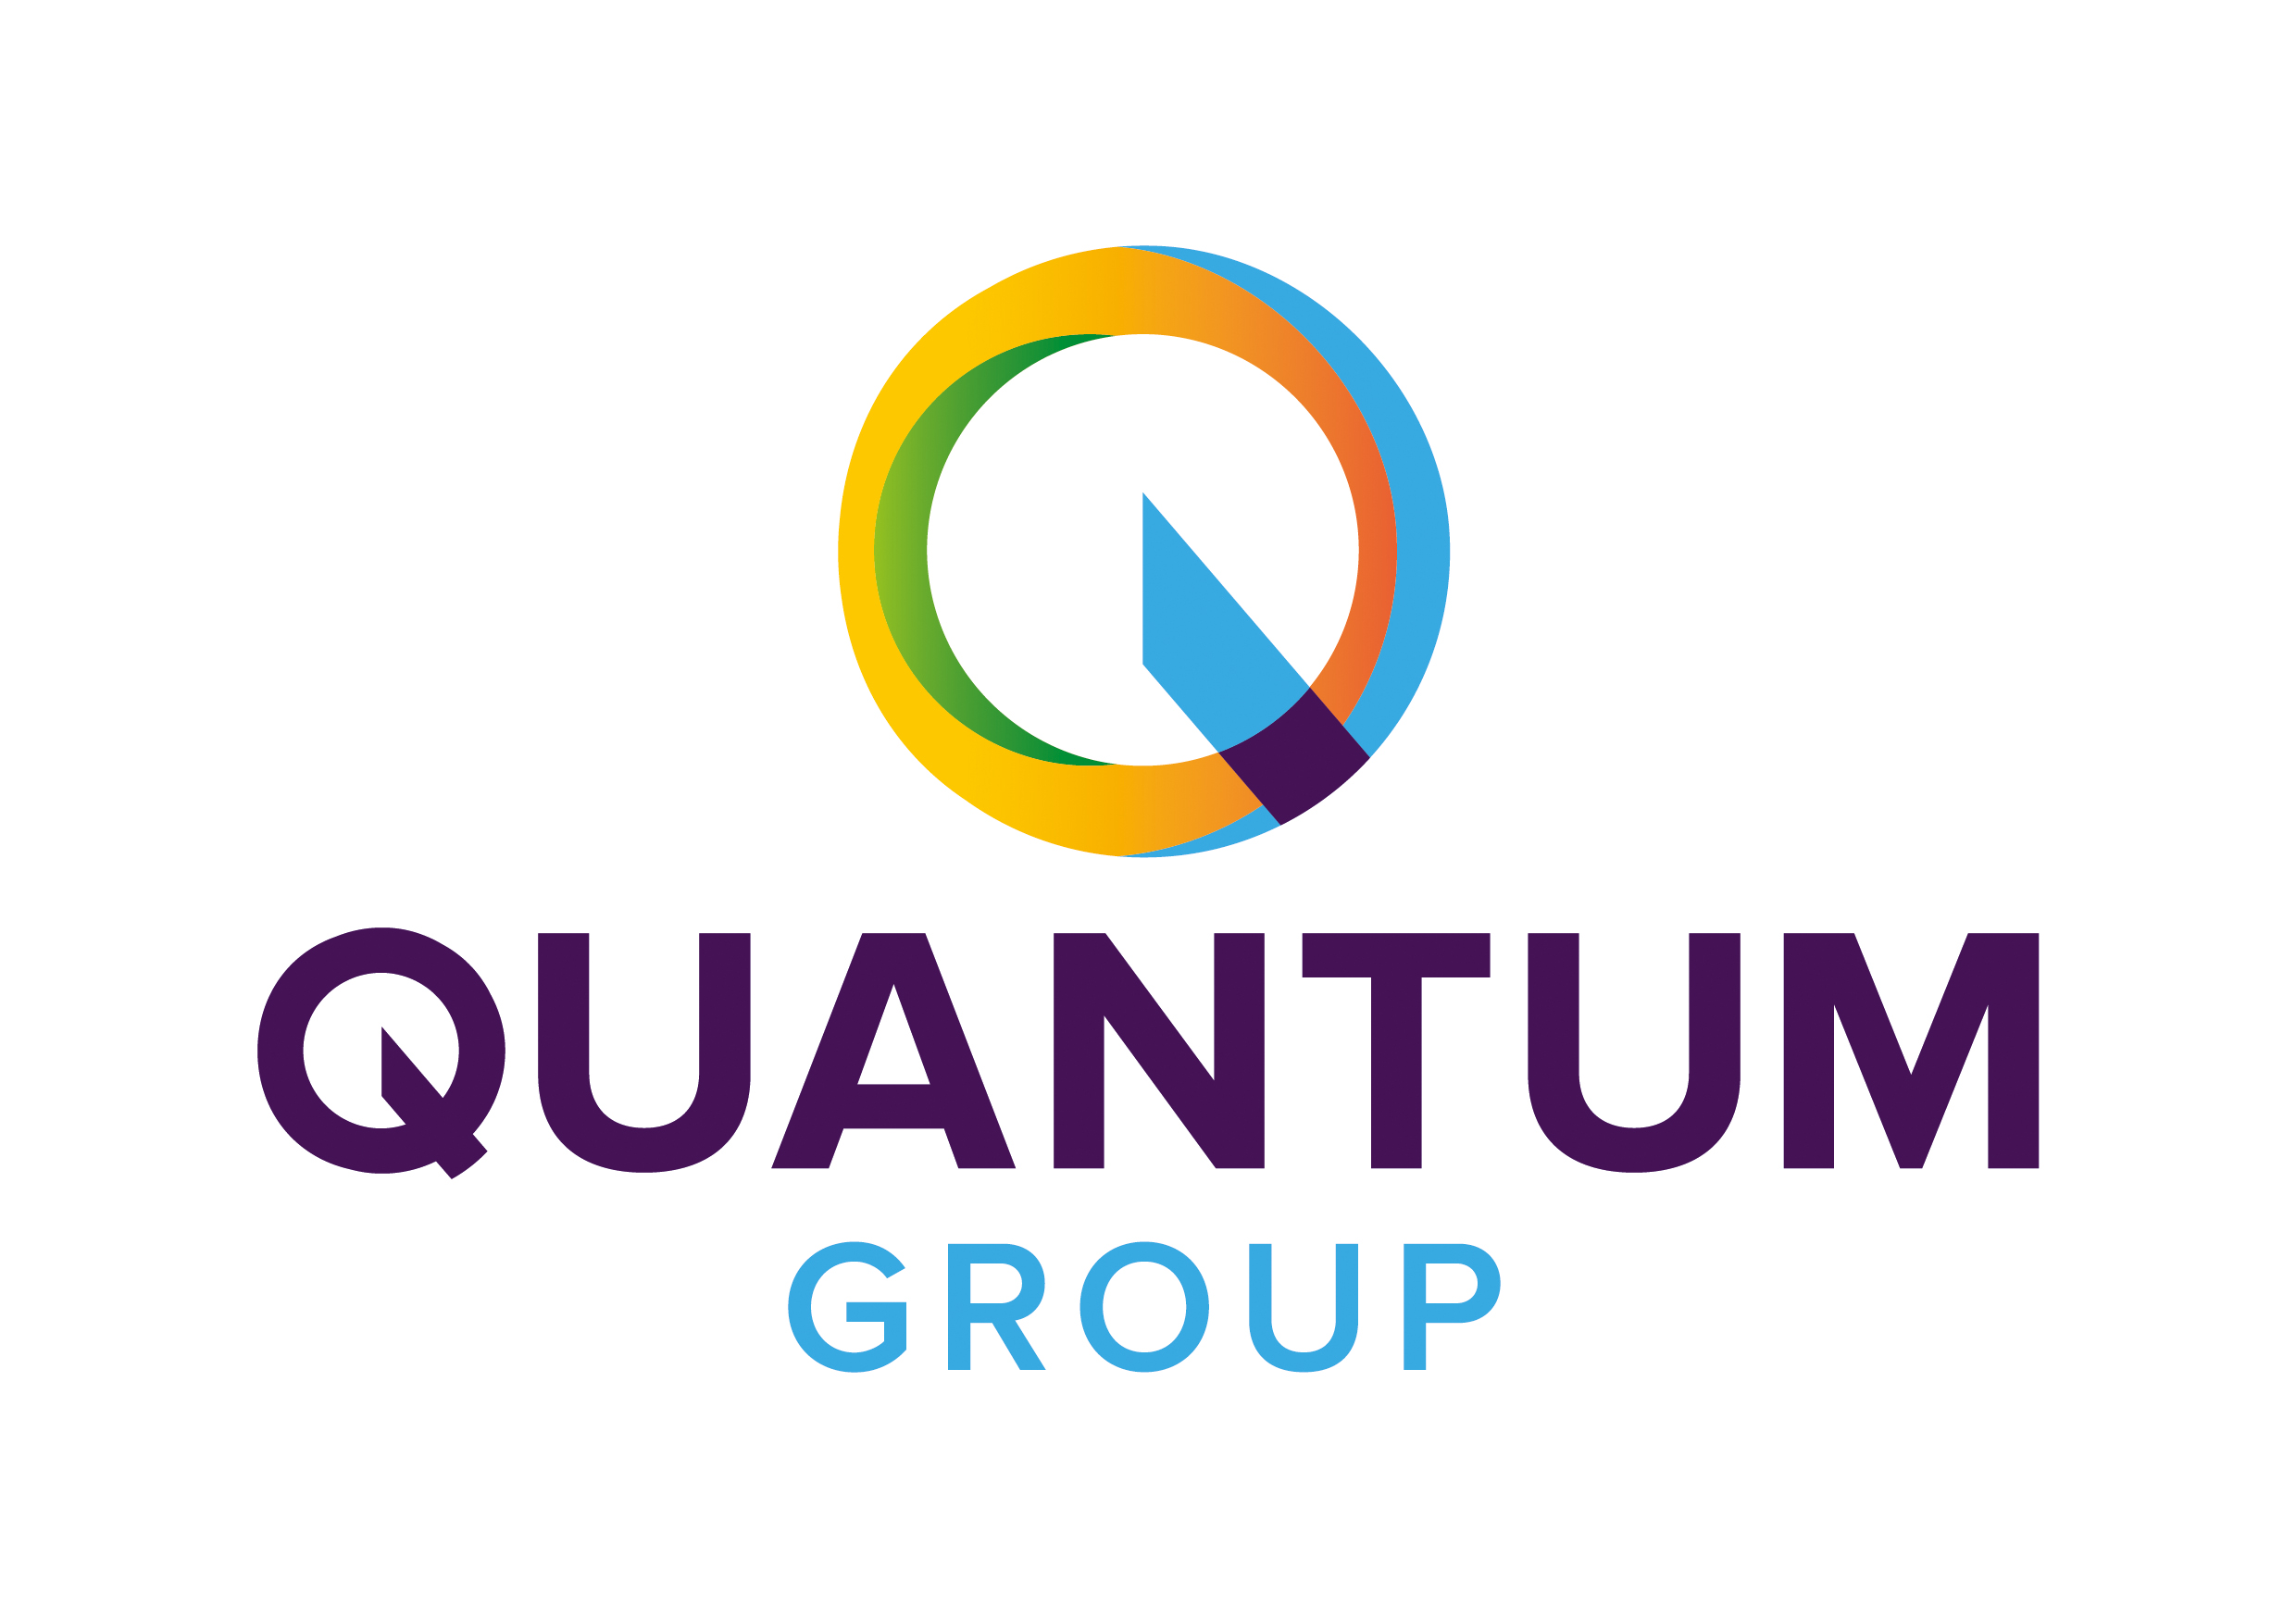 The Quantum Group